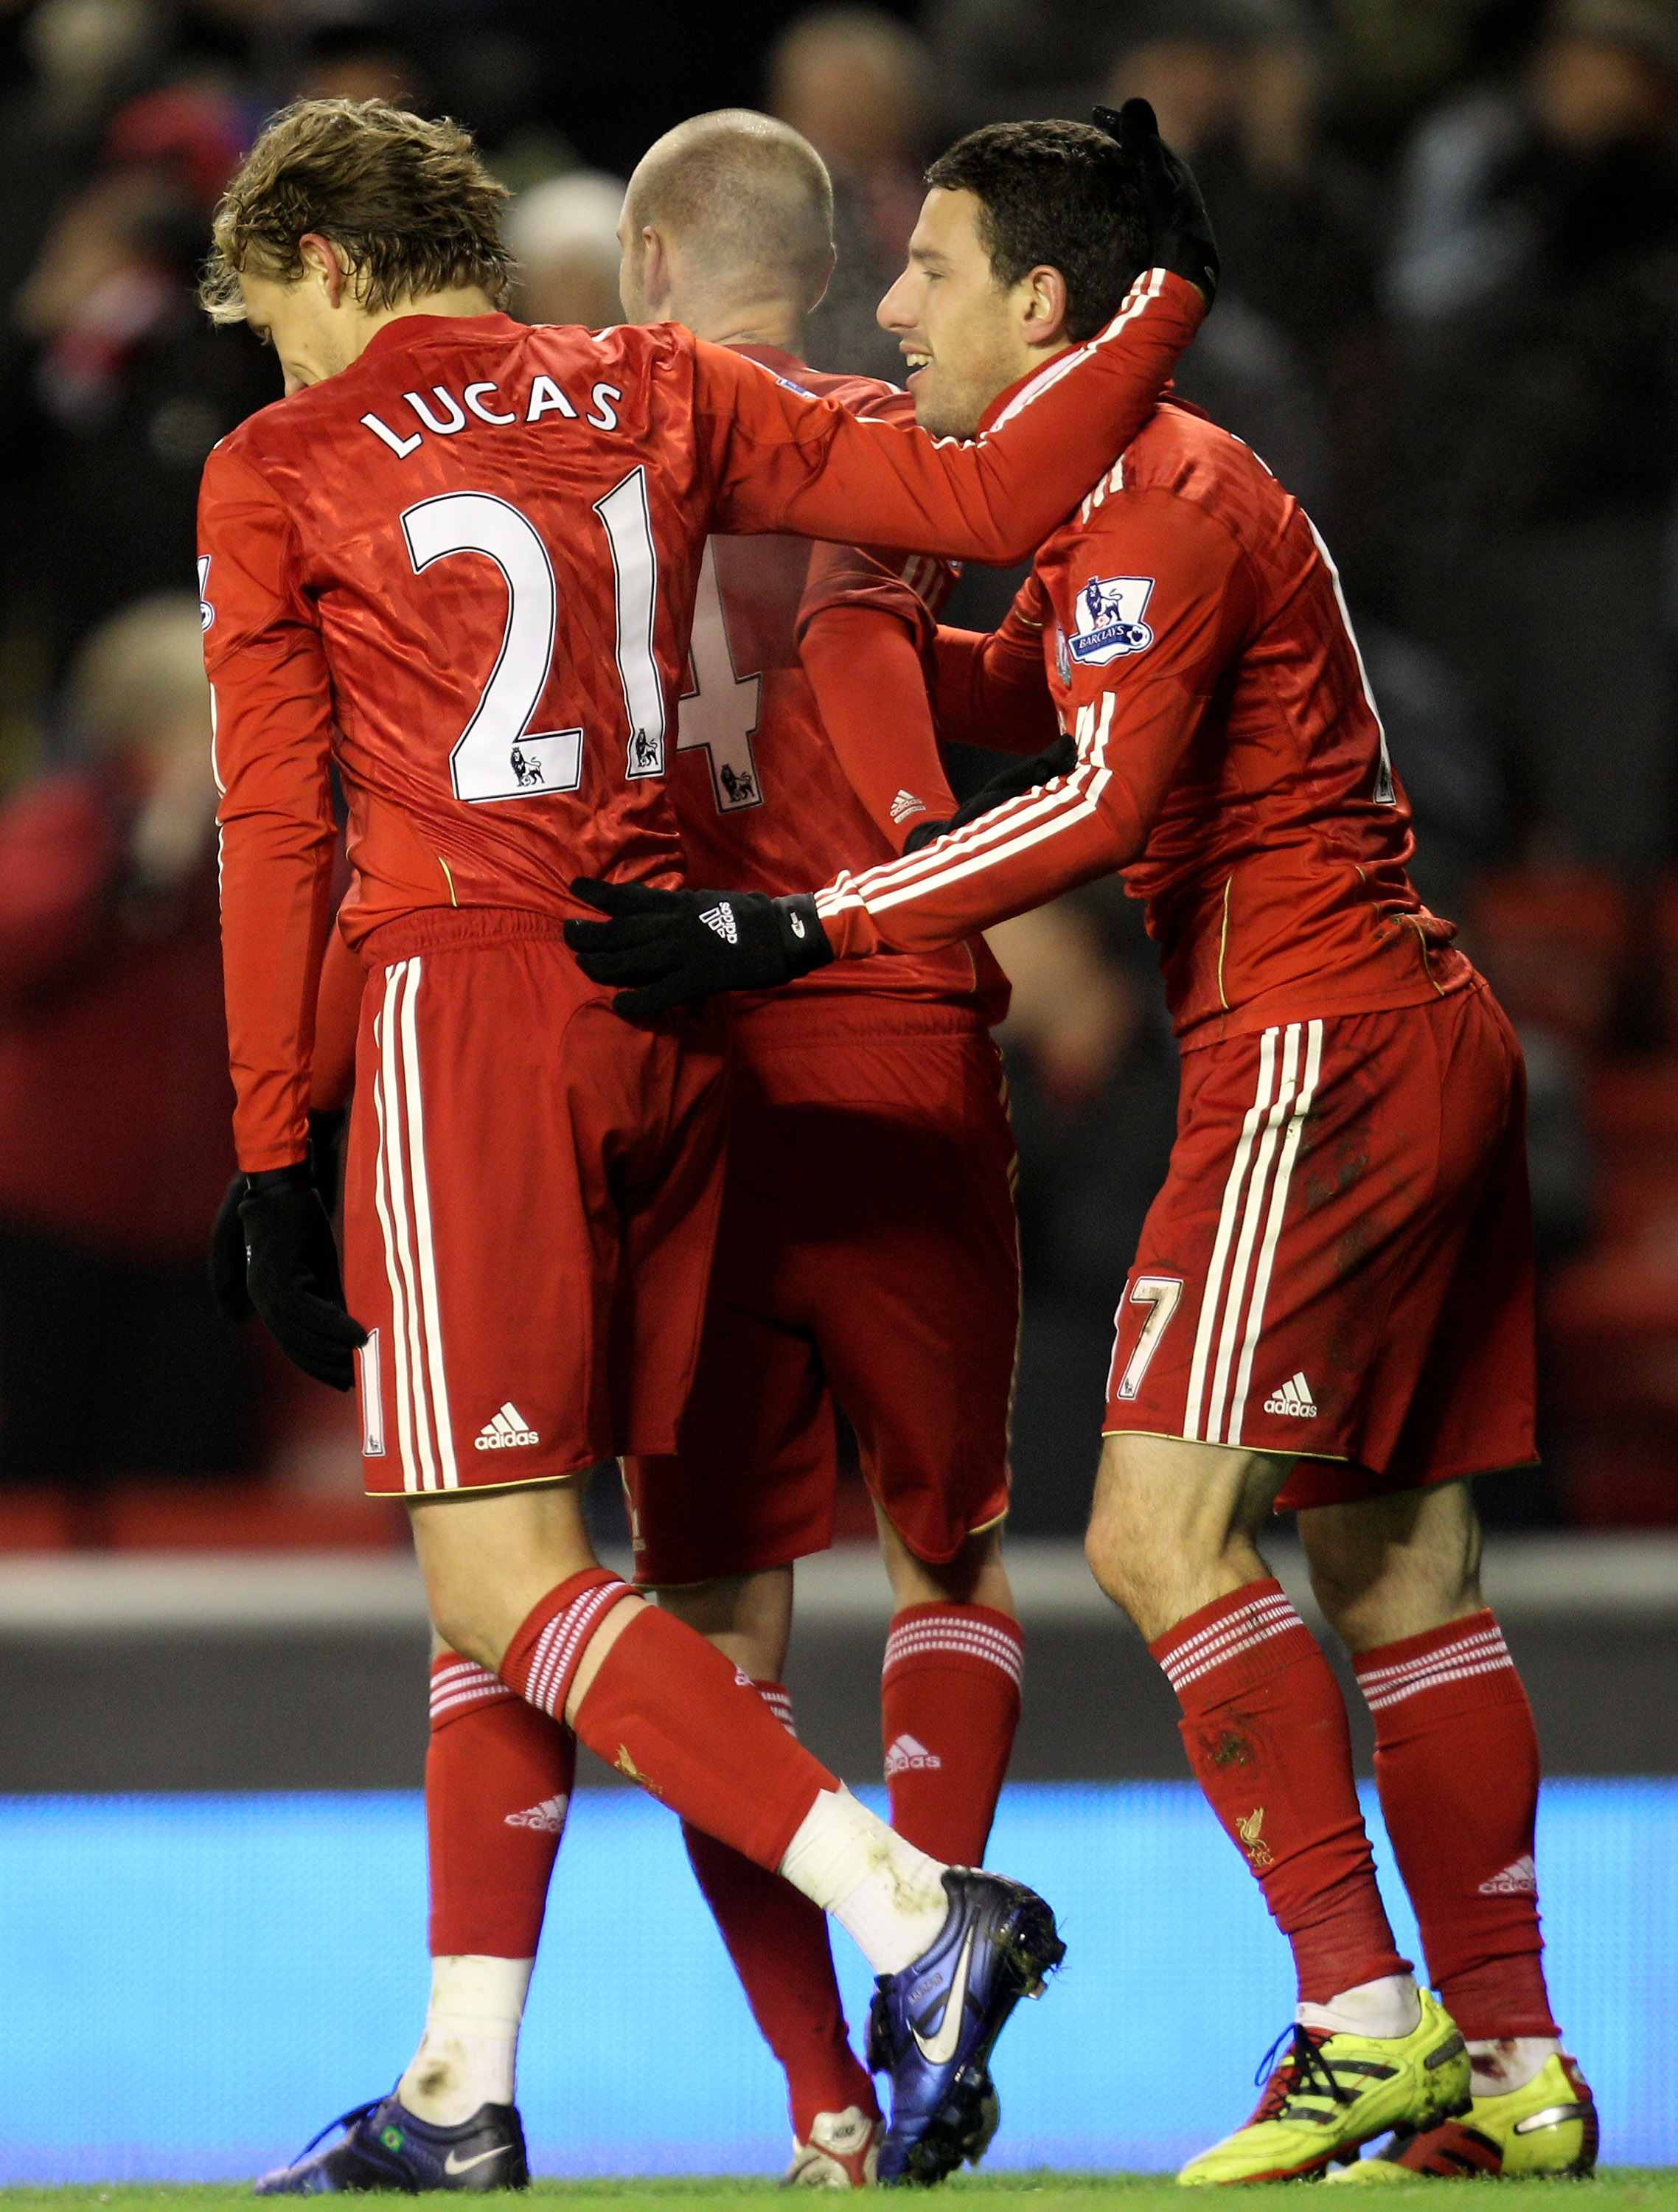 LIVERPOOL, ENGLAND - DECEMBER 06:   Maxi Rodriguez of Liverpool is congratulated by team mate Lucas after scoring his team's third goal during the Barclays Premier League match between Liverpool and Aston Villa at Anfield on December 6, 2010 in Liverpool,